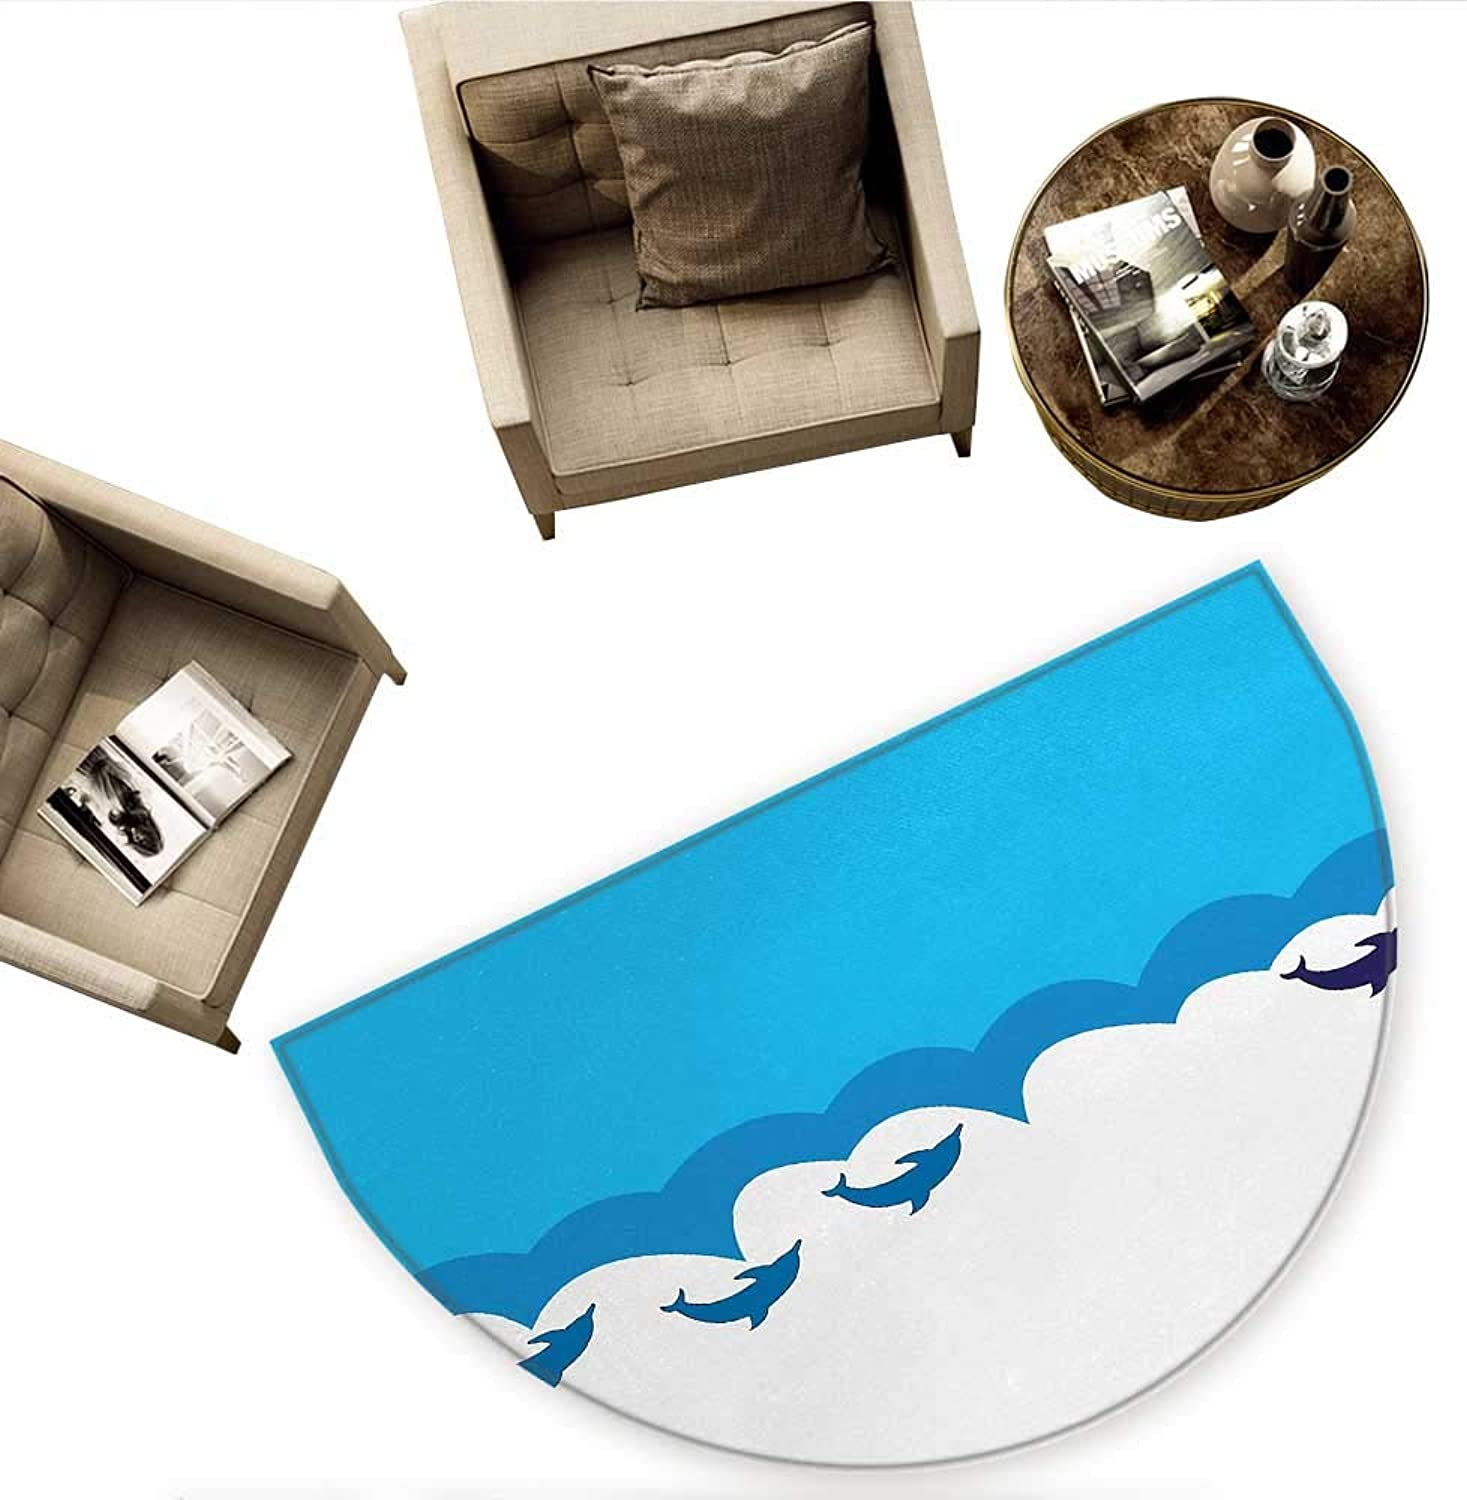 Sea Animals Semicircular CushionLead and Three Dolphins Shadow on Waves Oceanlife Maritime Theme Image Entry Door Mat H 59  xD 88.6  bluee Turqouise